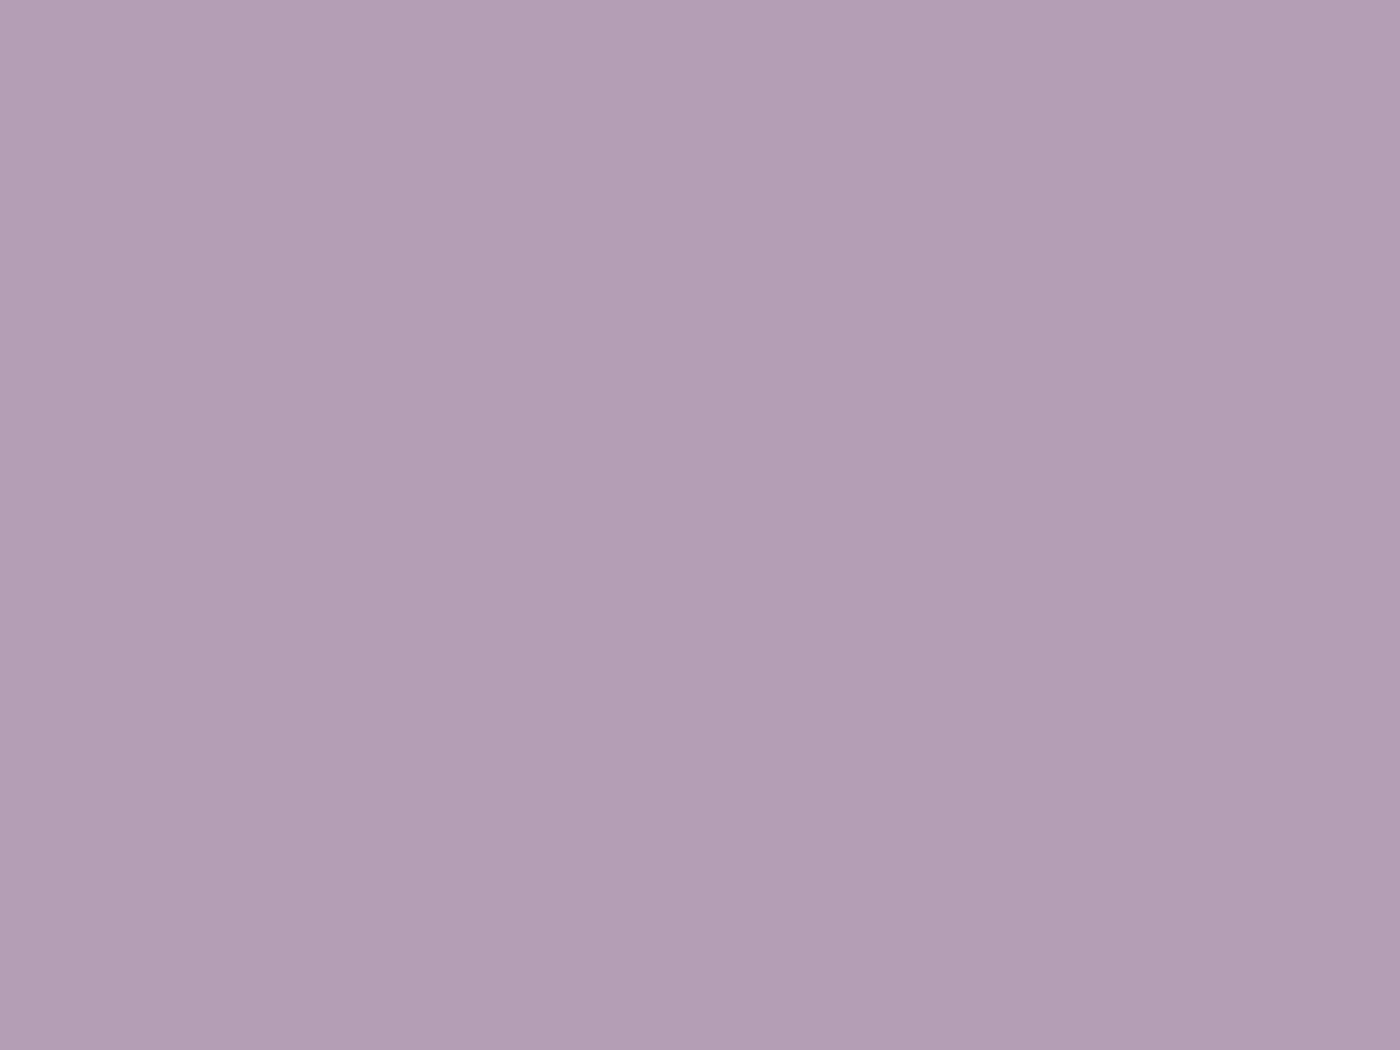 pastel solid colors background - photo #17